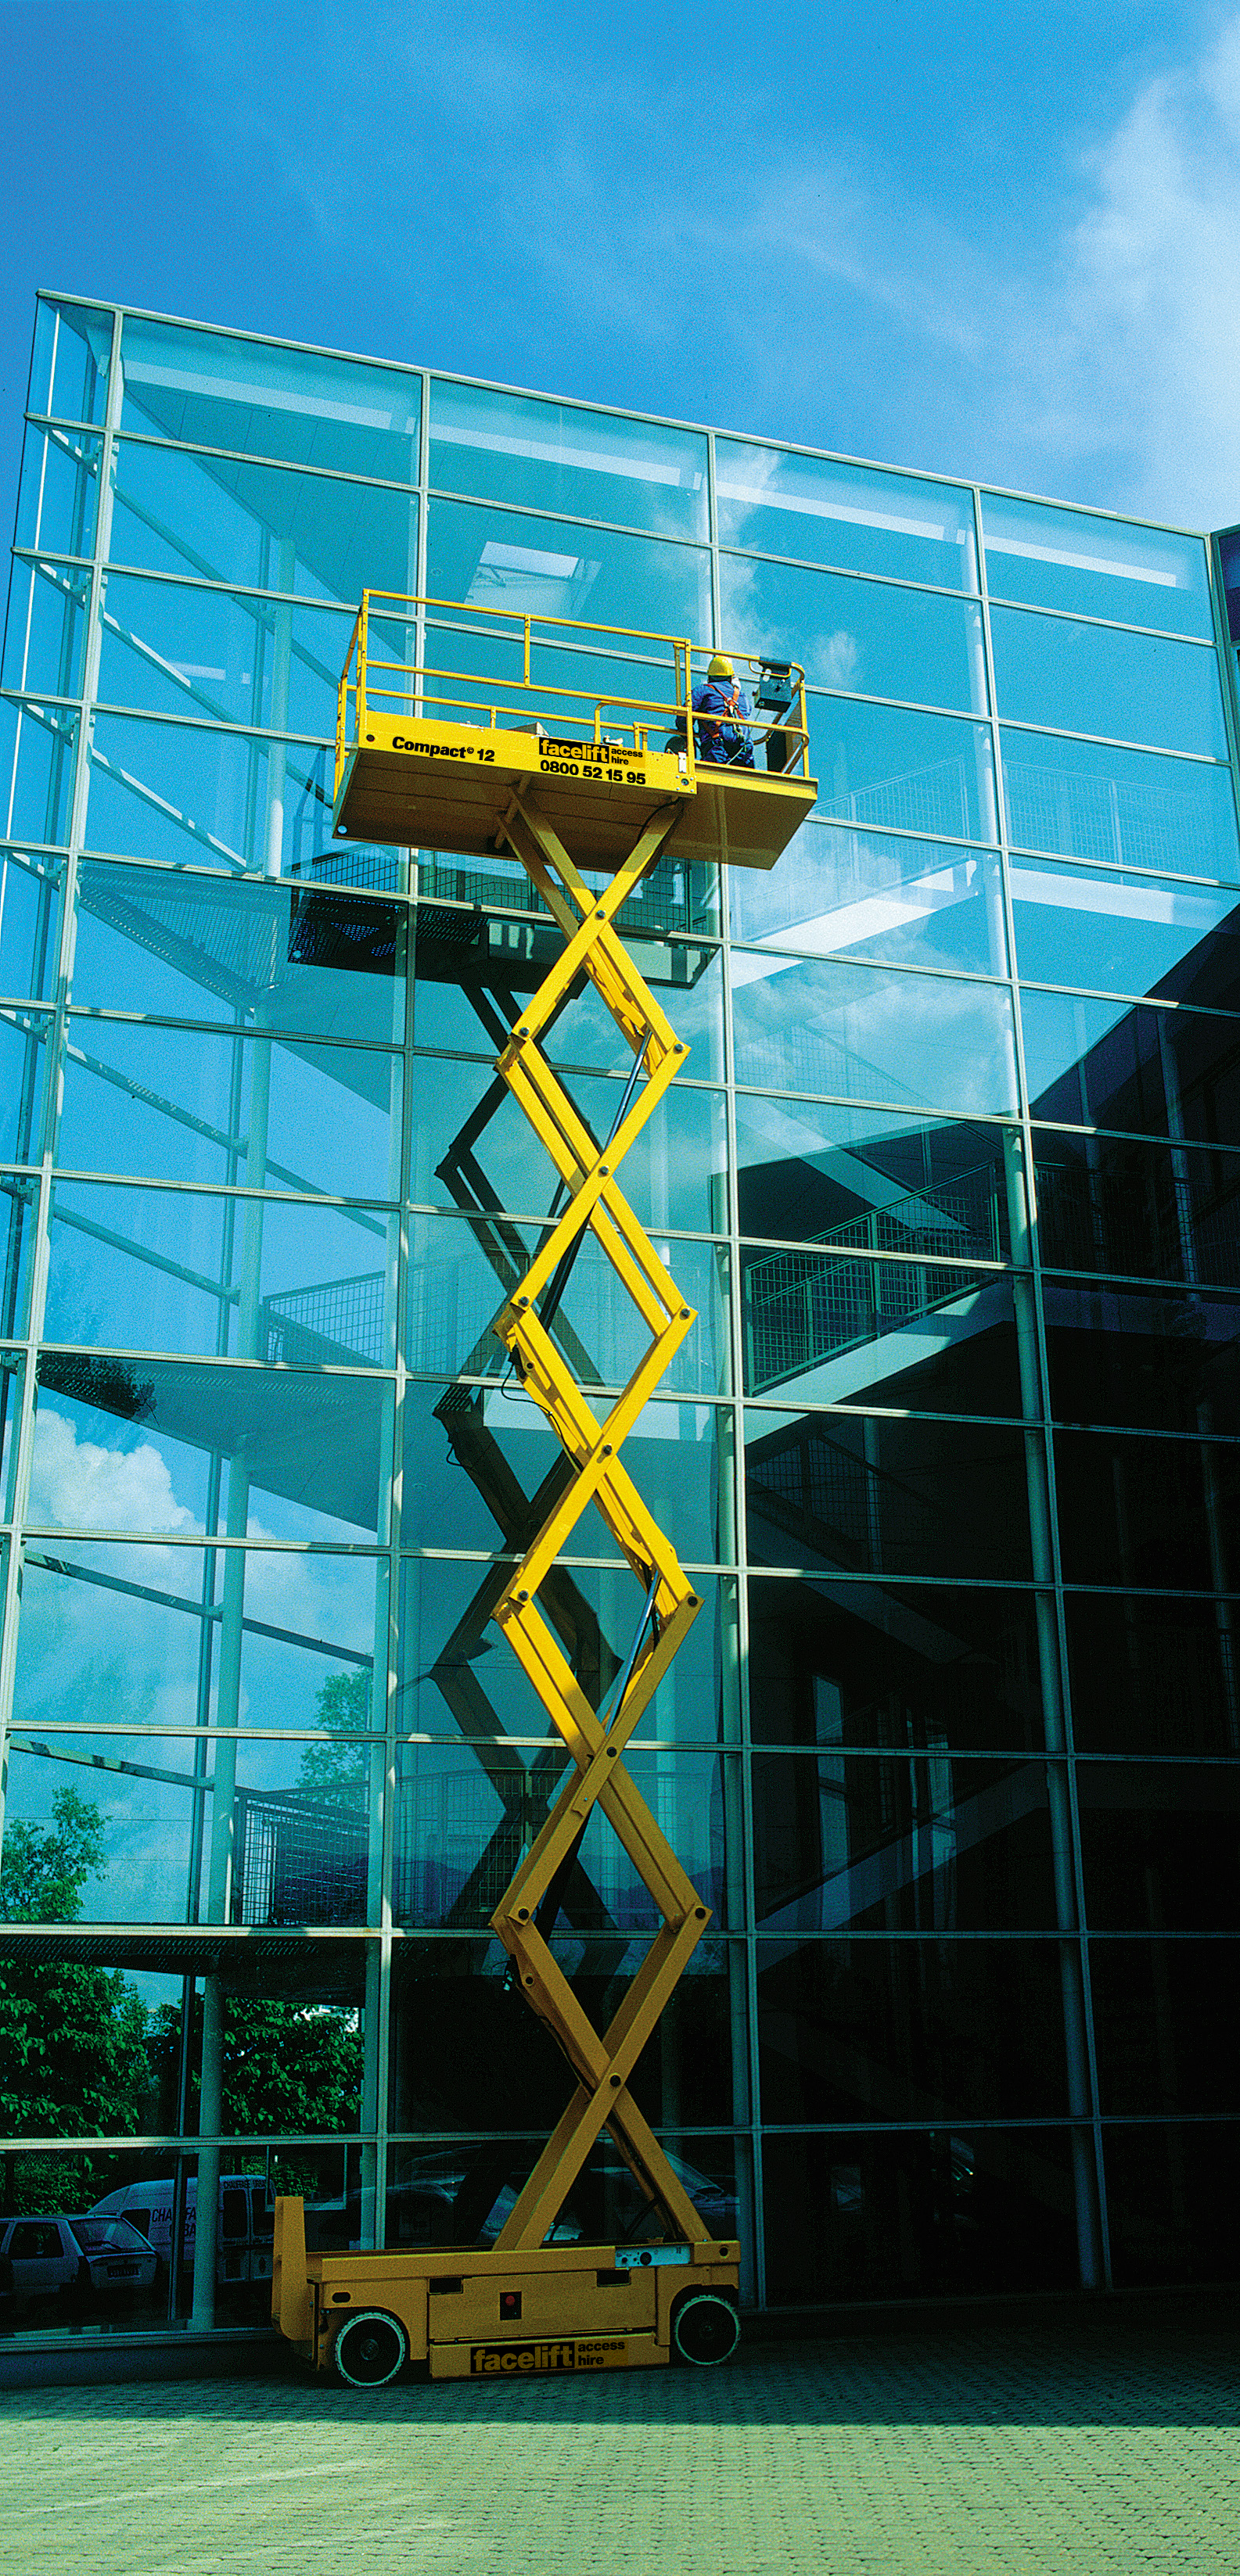 Haulotte-Compact12-Window-Cleaning